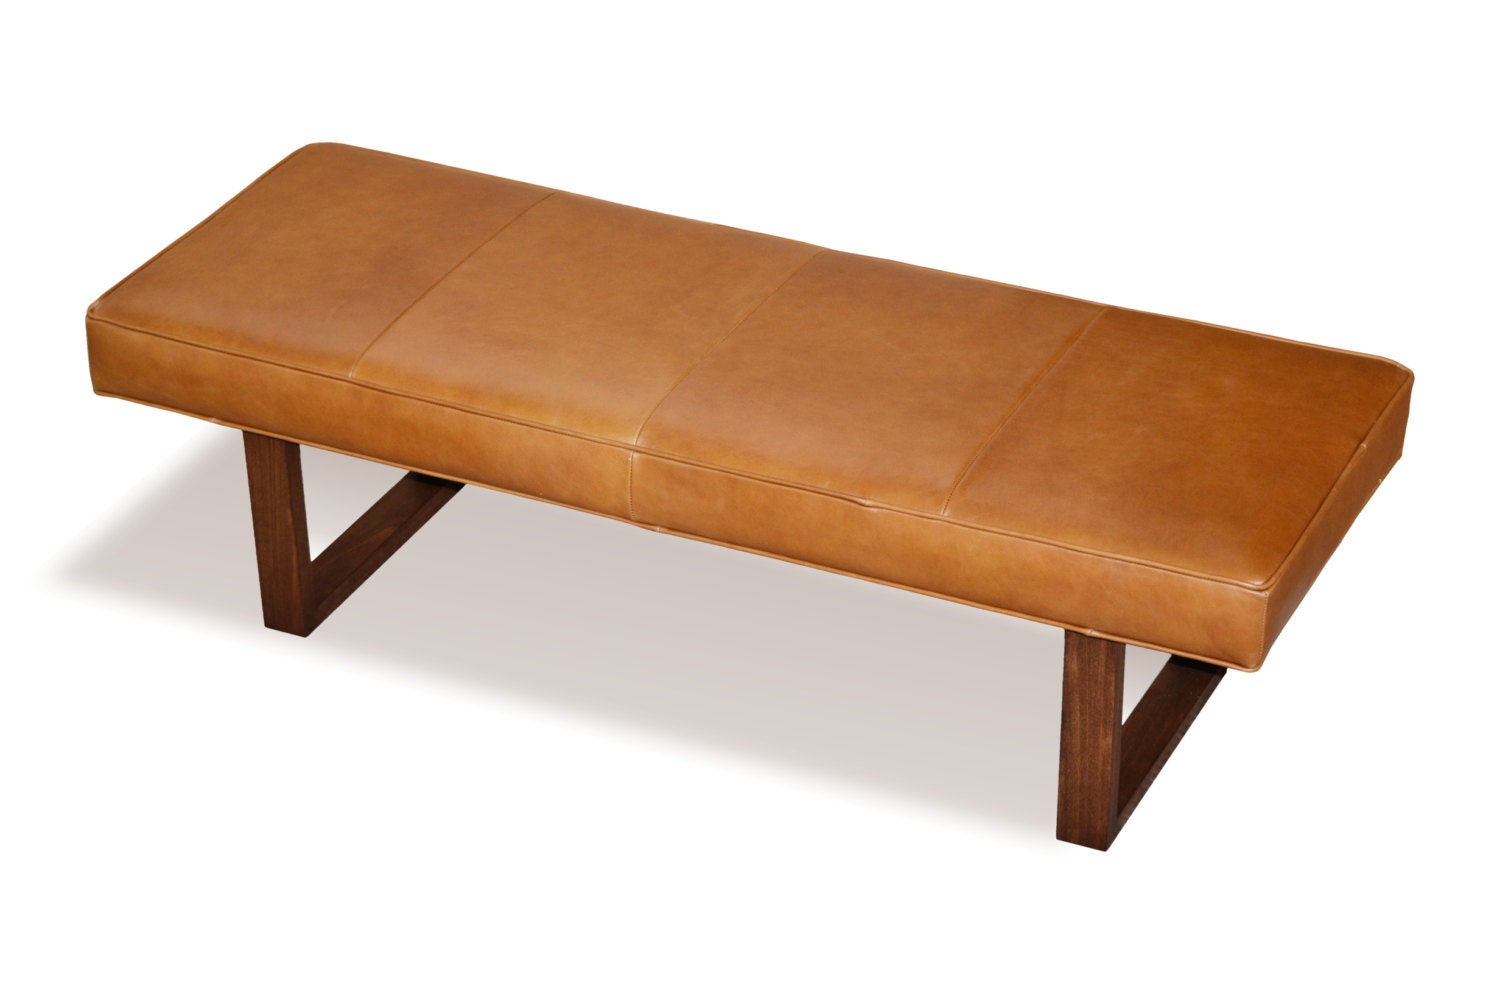 Distressed Brown Genuine Leather Upholstered Bench Ottoman